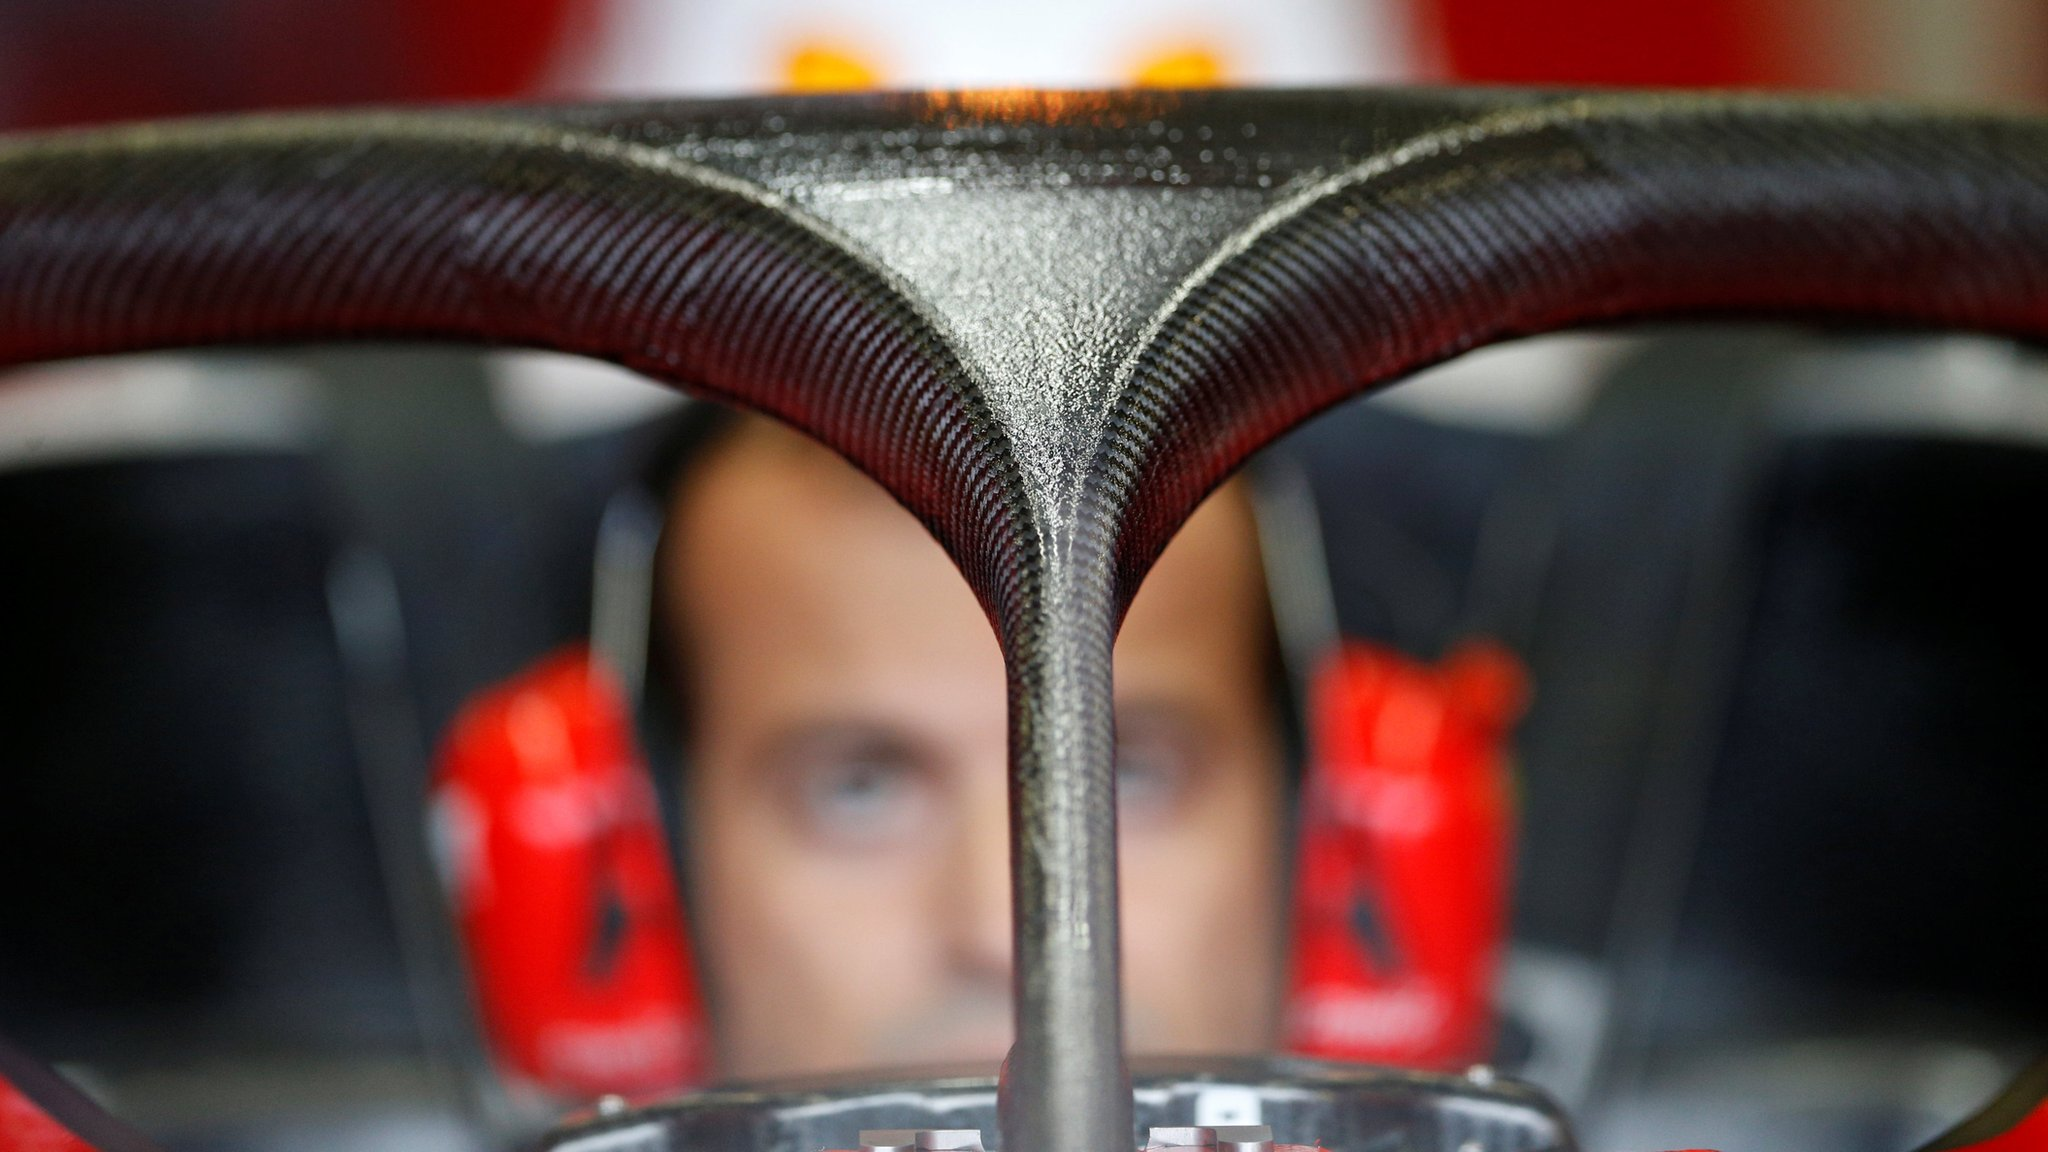 'Halo' can take weight of London bus - Mercedes' James Allison